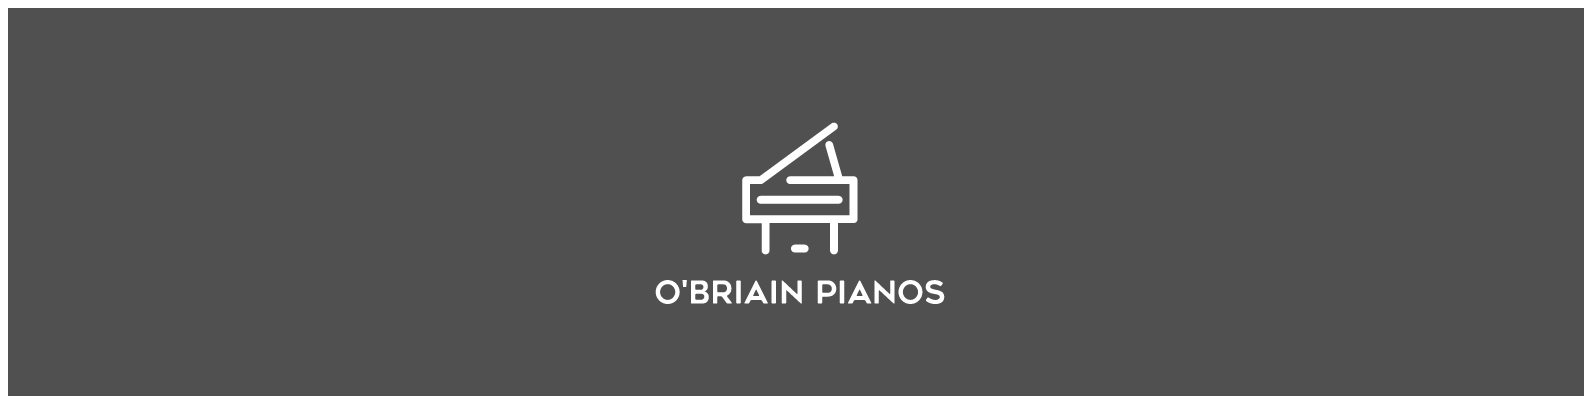 Saxophone Lessons at Fermata School of Music-O'Briain Pianos